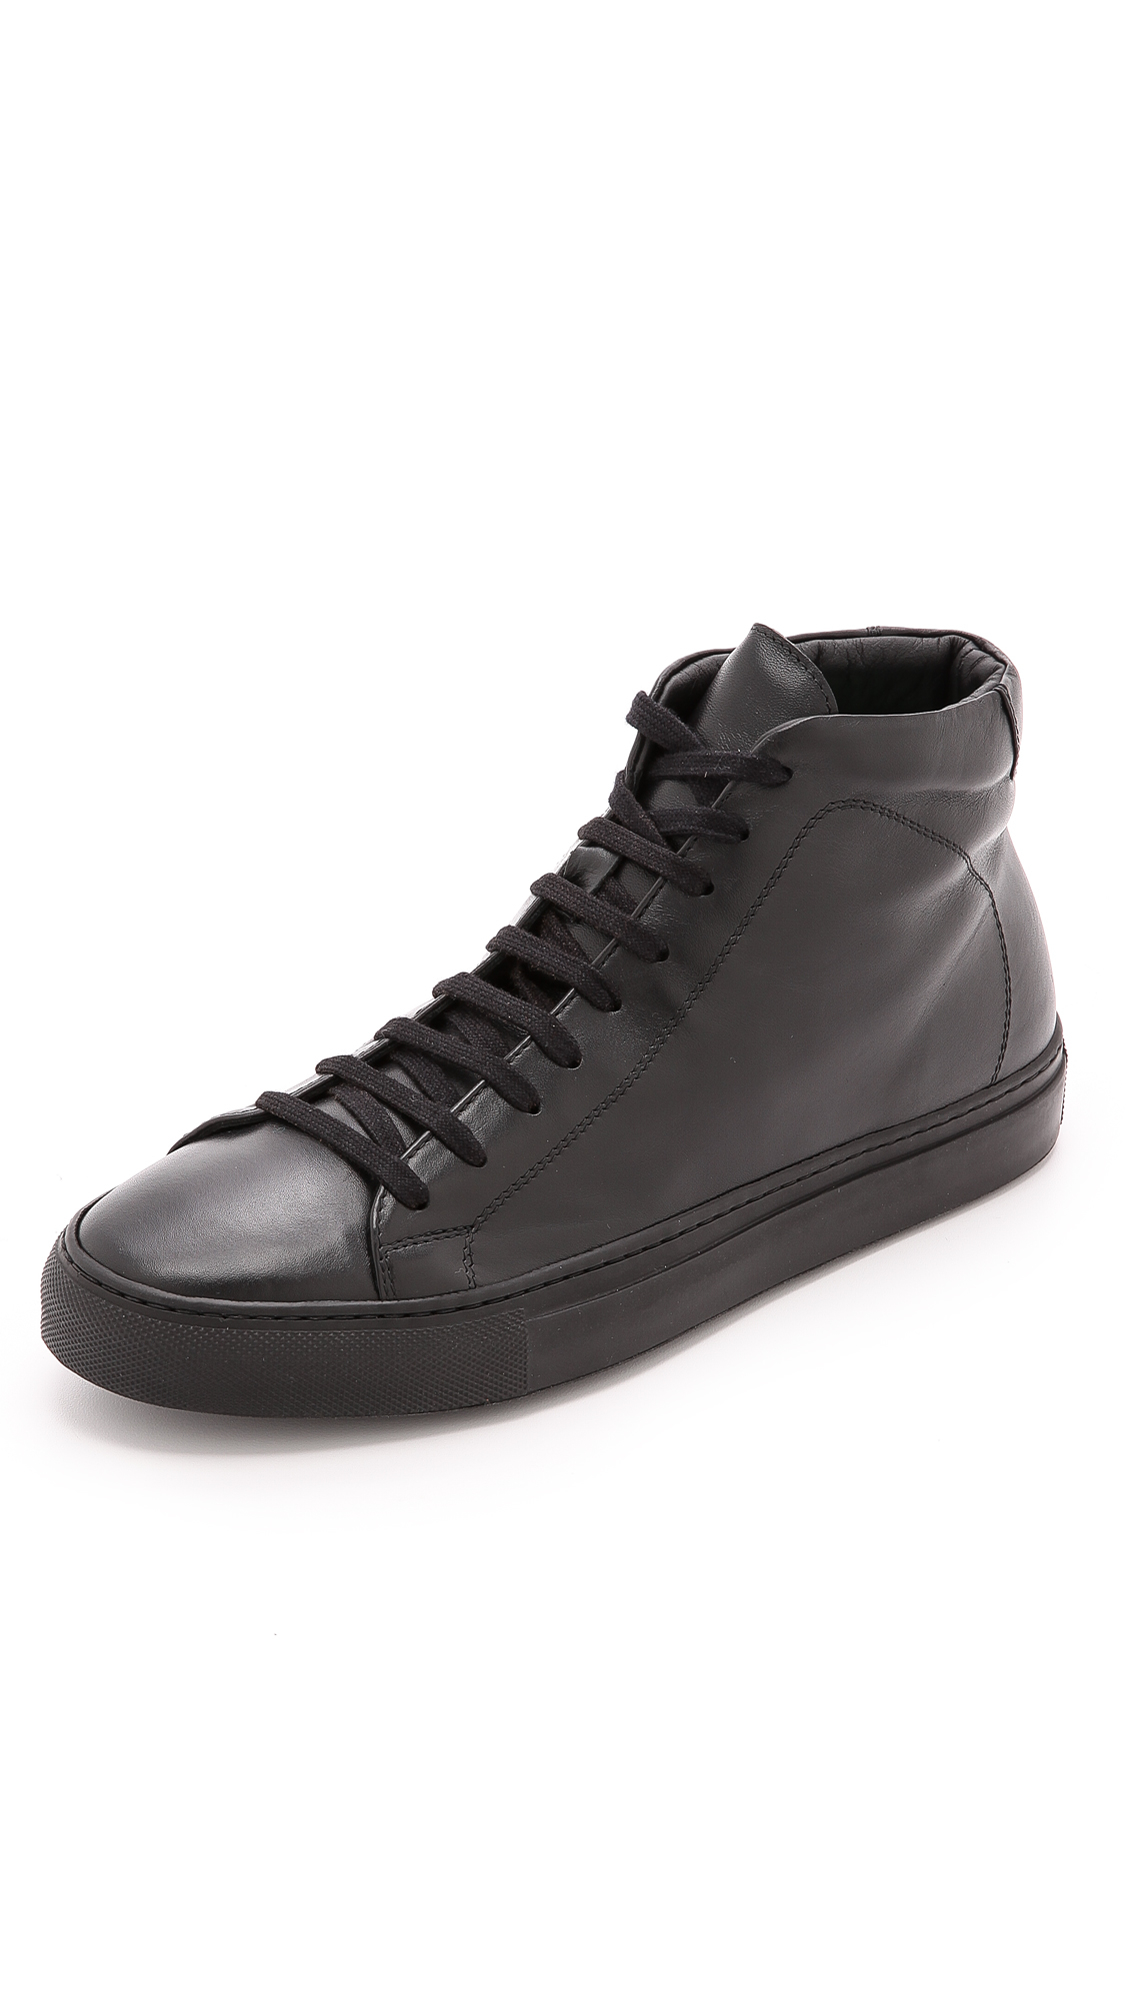 Lyst - Svensson Classic High Top Sneakers in Black for Men fd62c1aba41